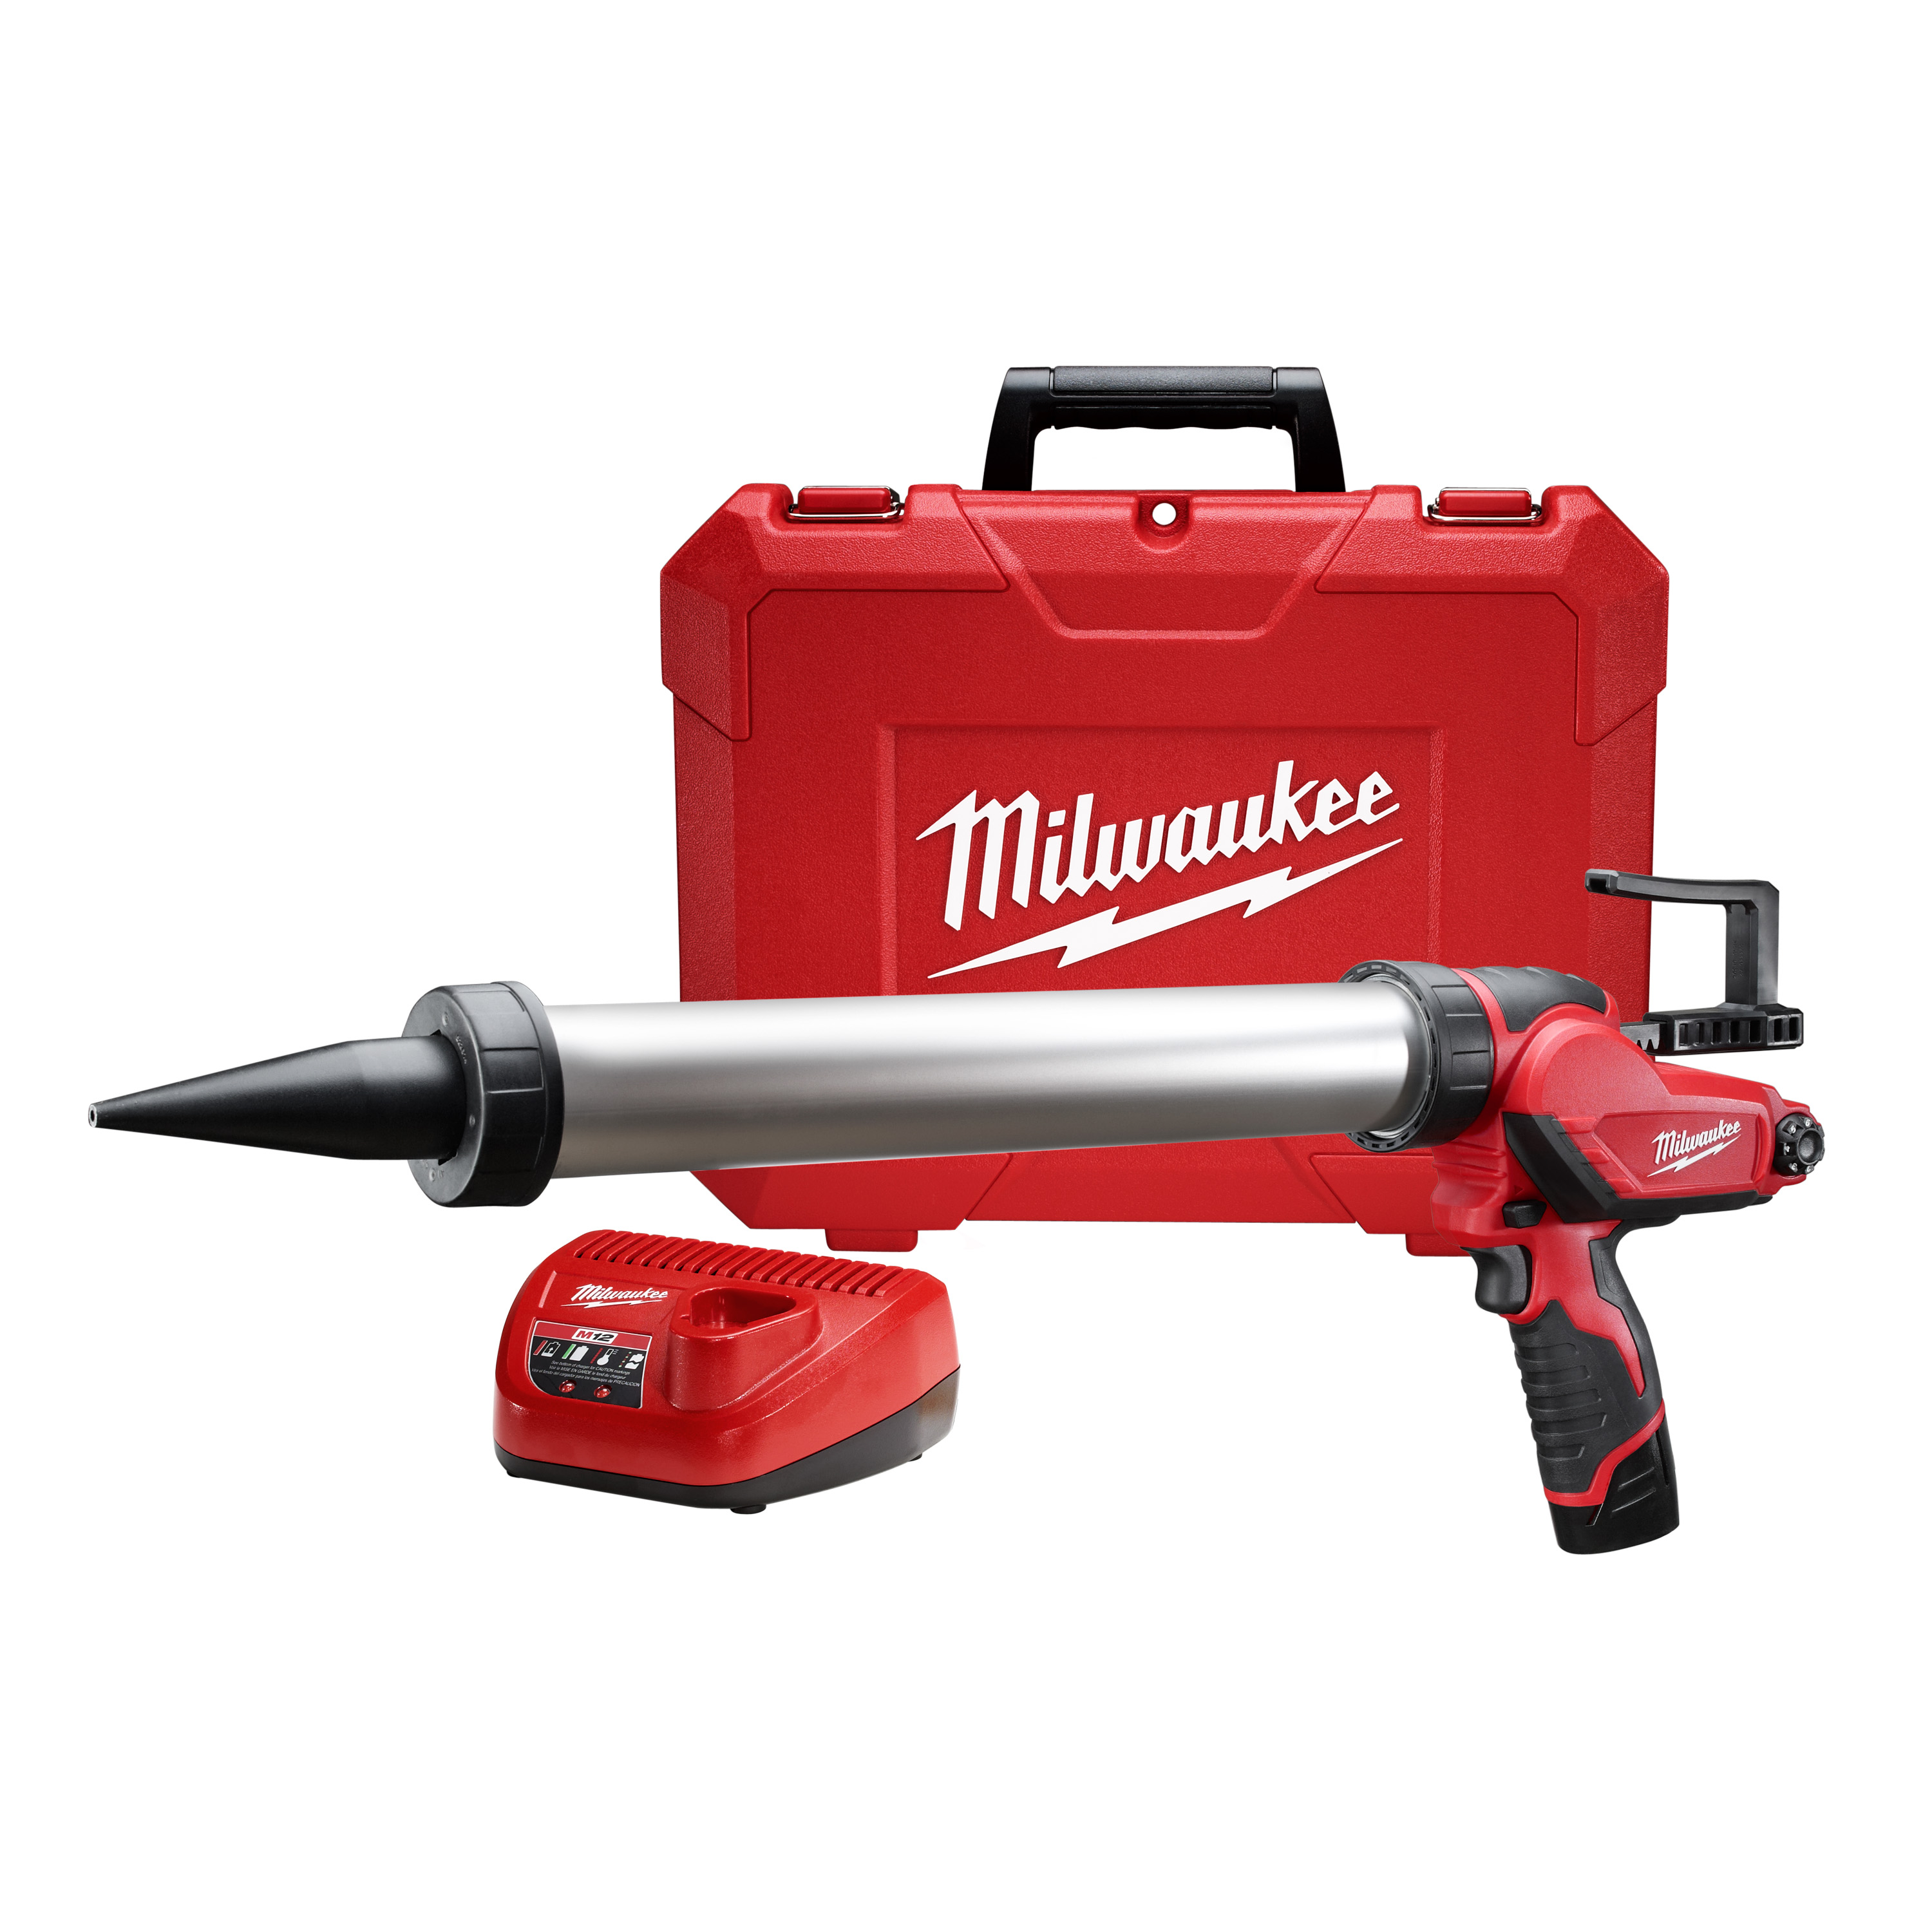 Milwaukee® M12™ 2442-21 Compact Cordless Caulk Gun Kit, 20 oz Capacity, 400 lb, 12 VDC, Lithium-Ion Battery, Metal Housing